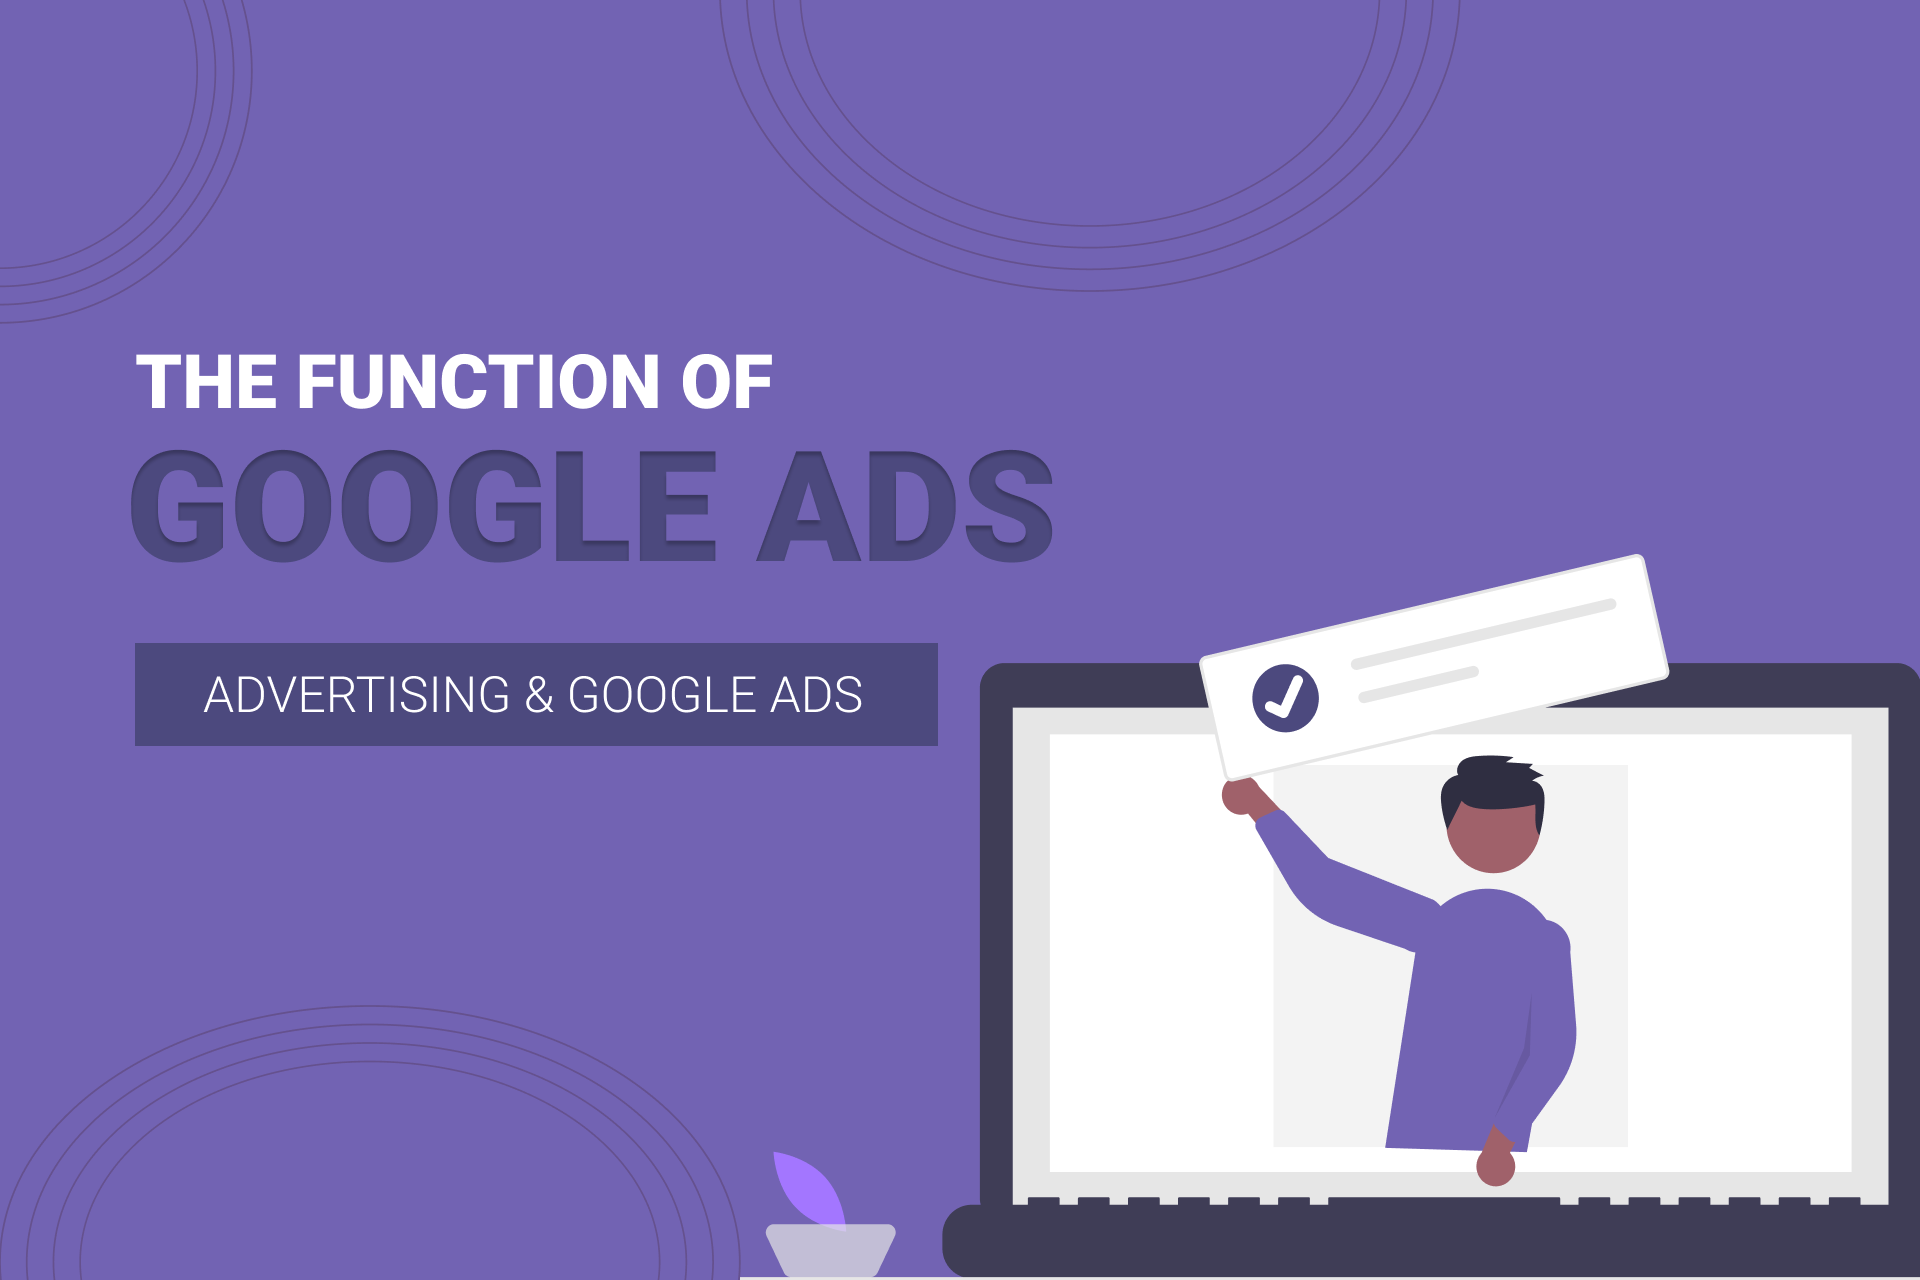 How Does Google Ads Work? The Ins And Outs Of The PPC Platform